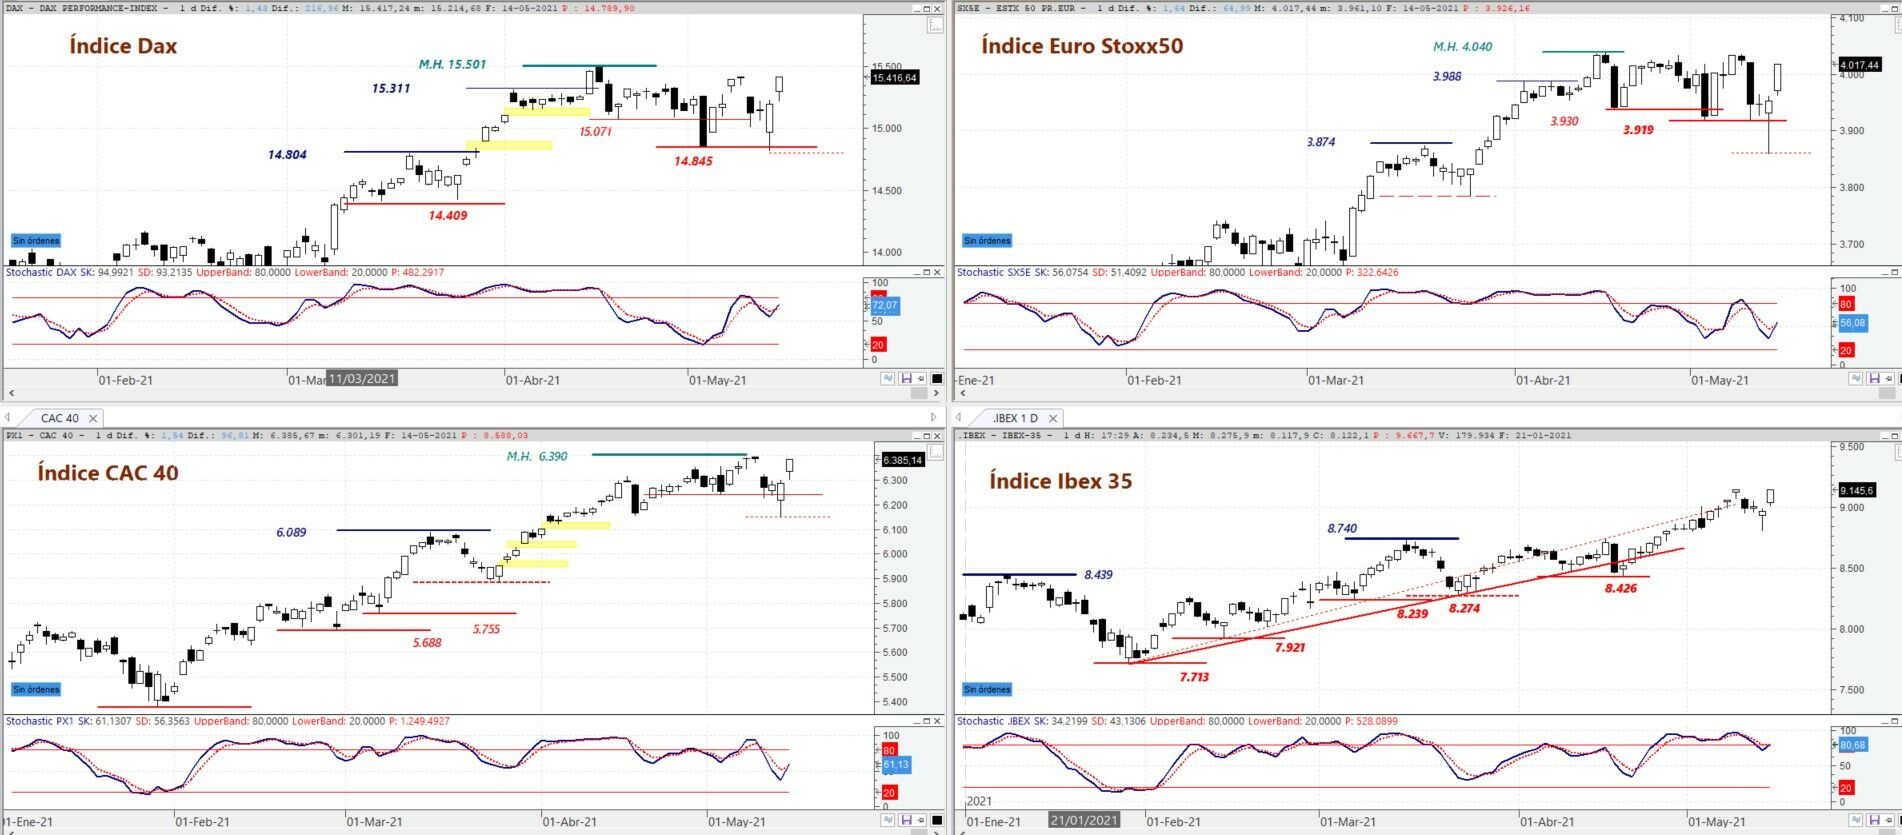 DAX, EURO STOXX 50, CAC 40 and IBEX 35 on daily chart